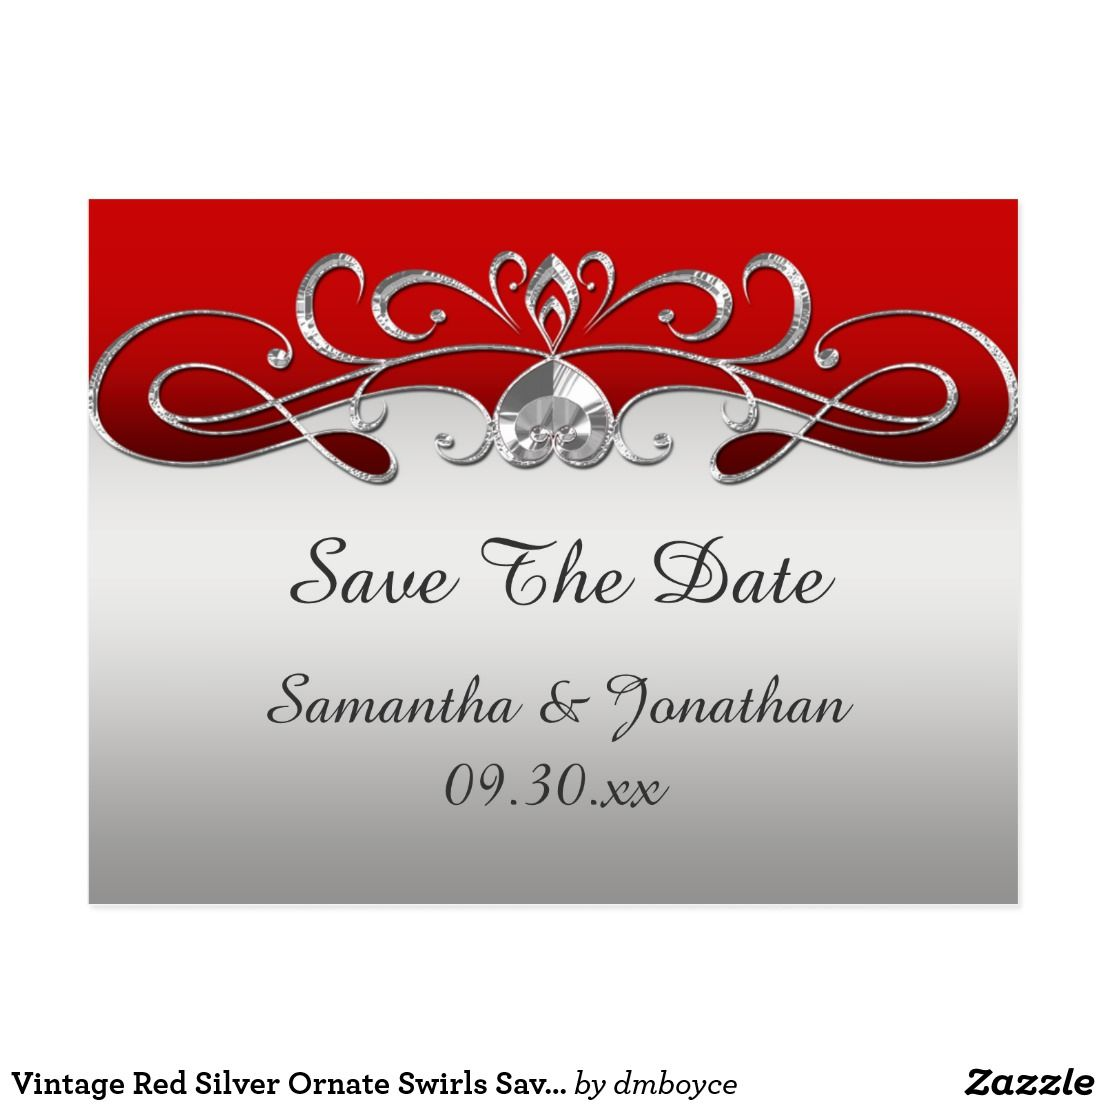 Vintage Red Silver Ornate Swirls Save The Date Postcard   Weddings